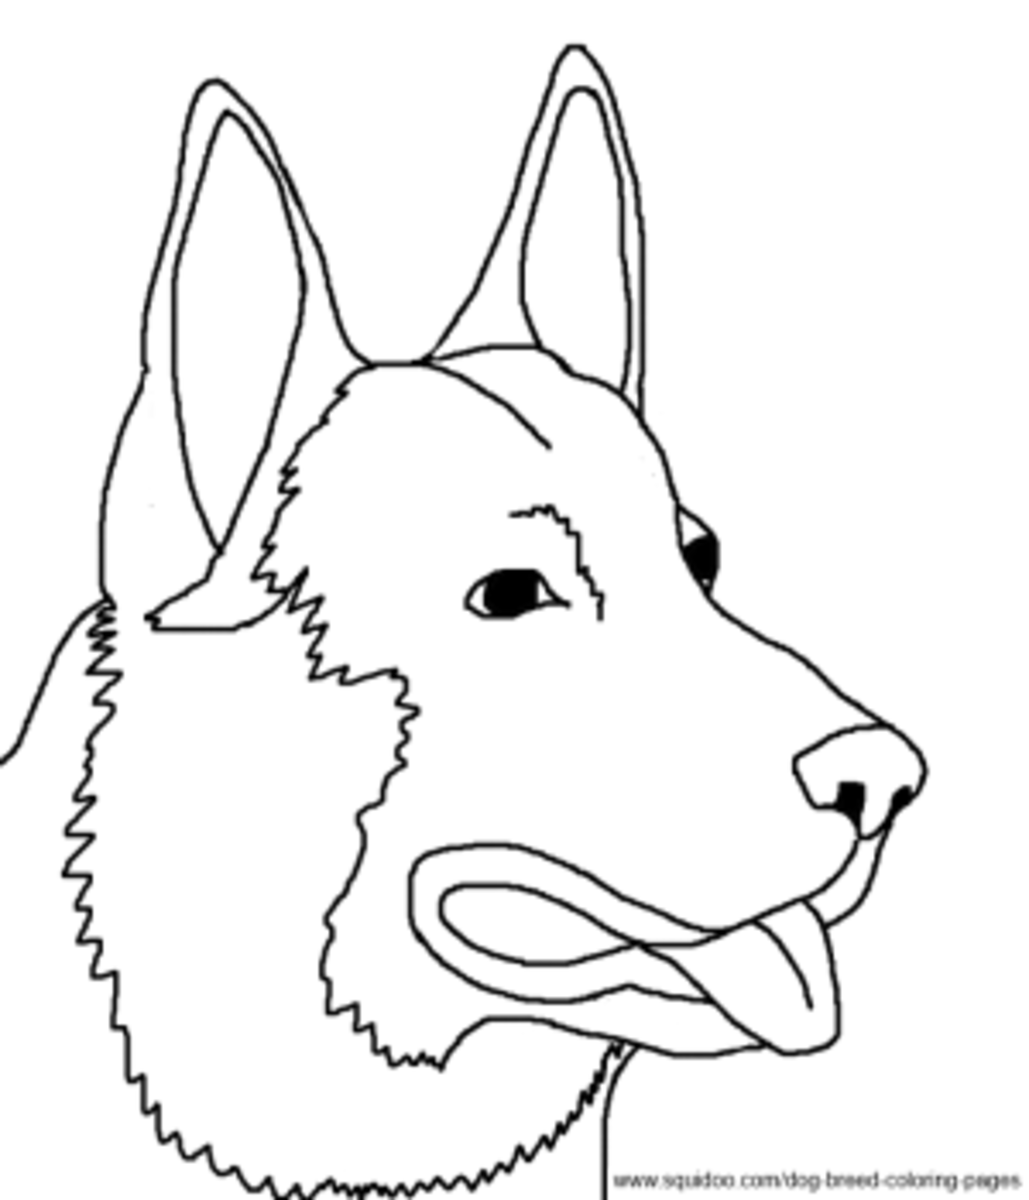 German Shepherd coloring page